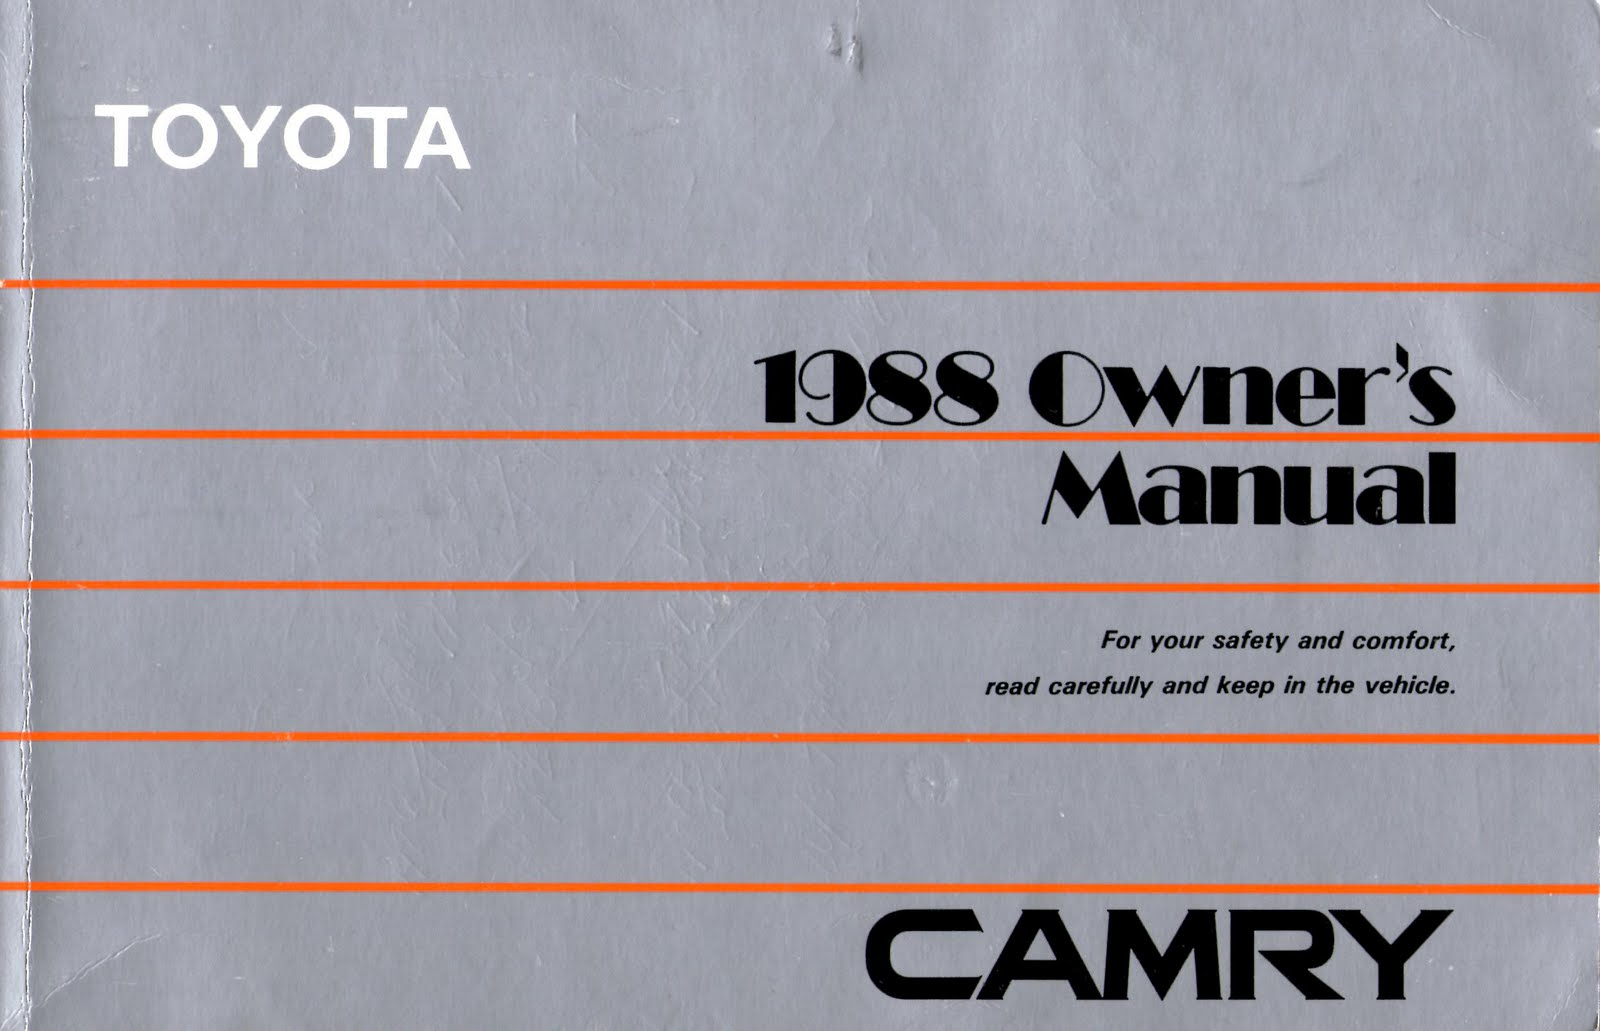 camry owner's manual - Basic Car Tips